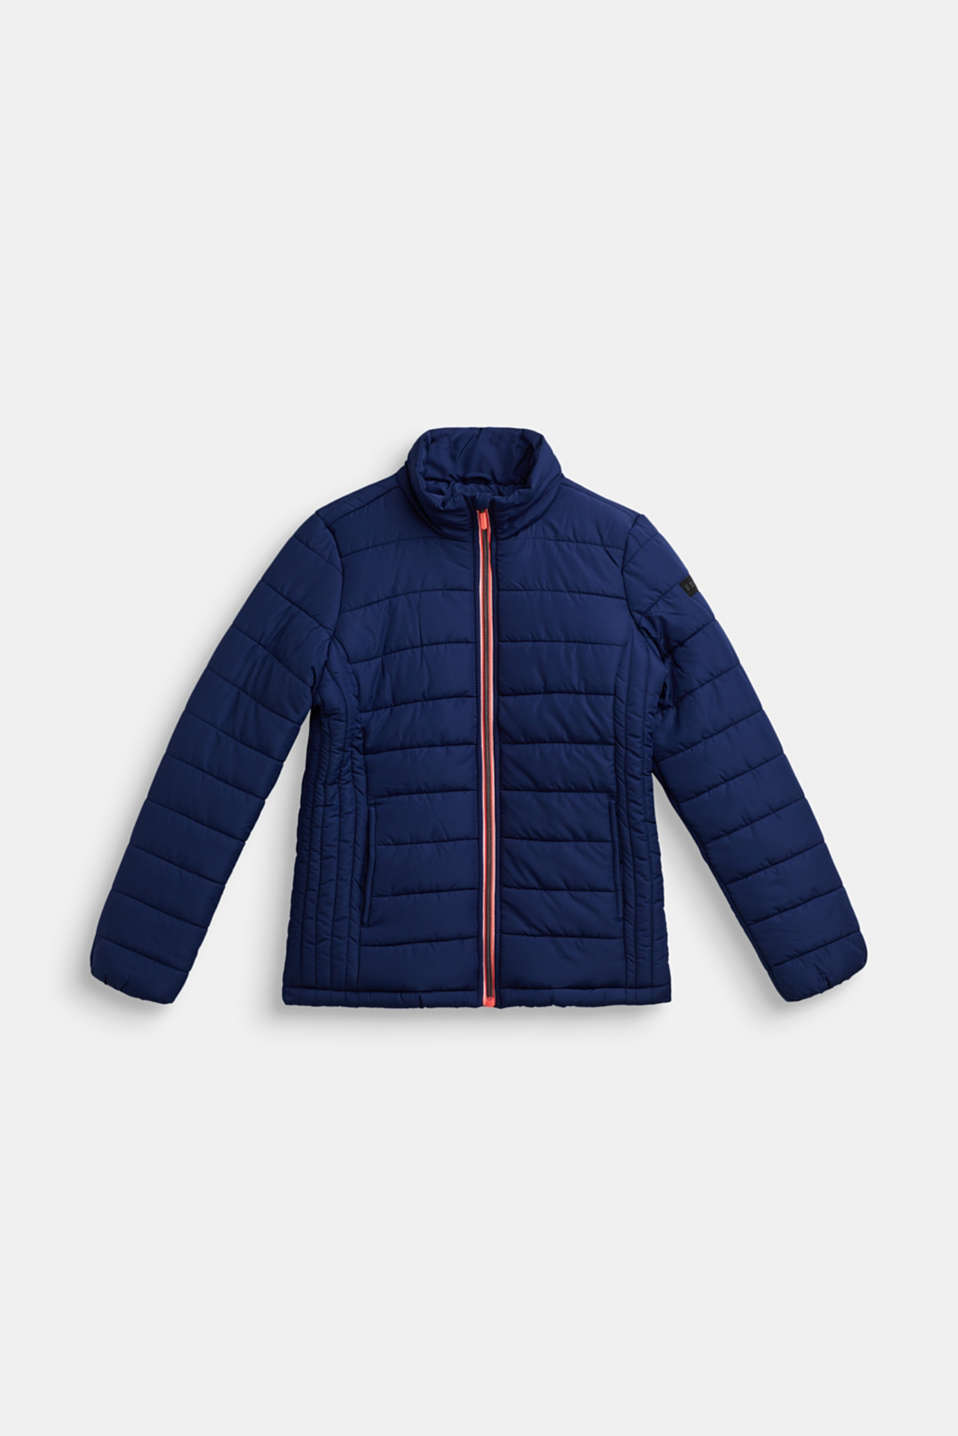 Esprit - Quilted jacket with a stand-up collar